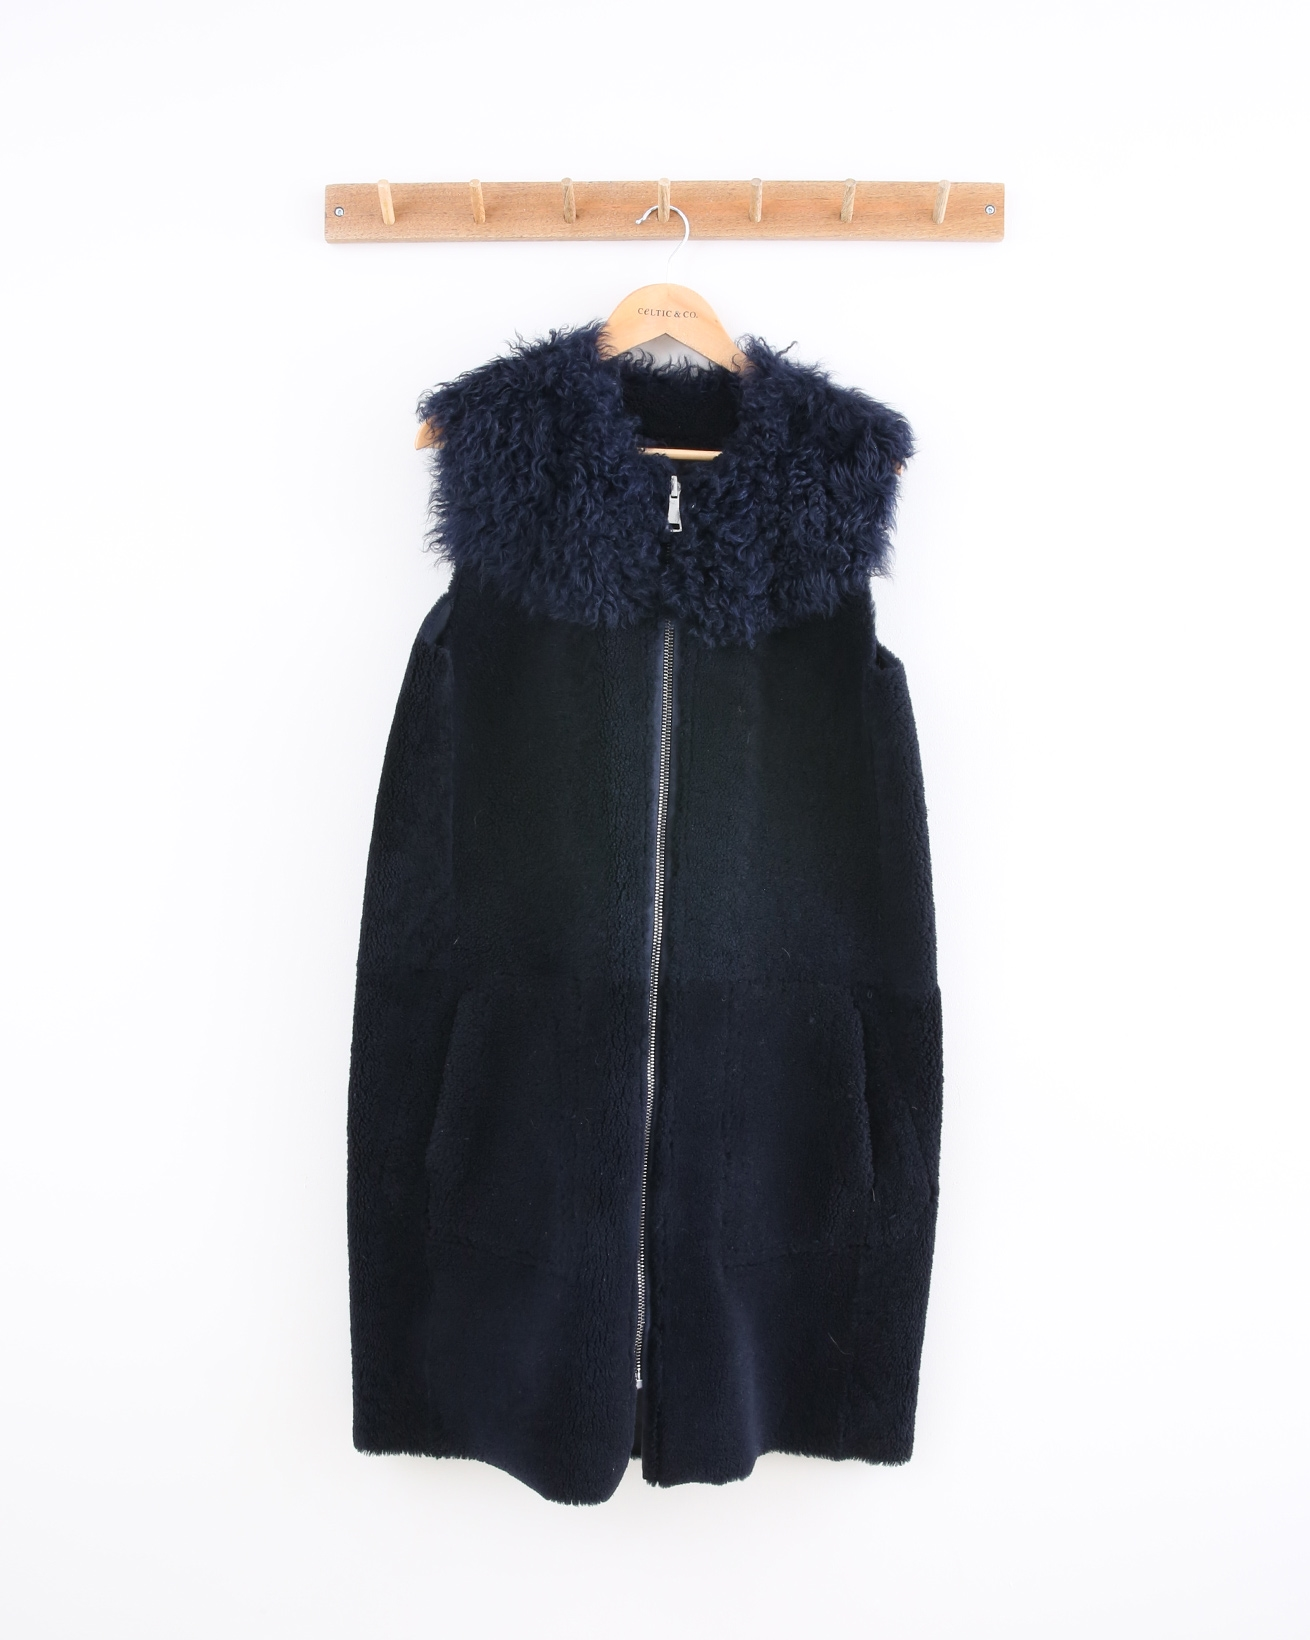 Reversible Teddy Cocoon Gilet - Size 10 - Navy - 1475